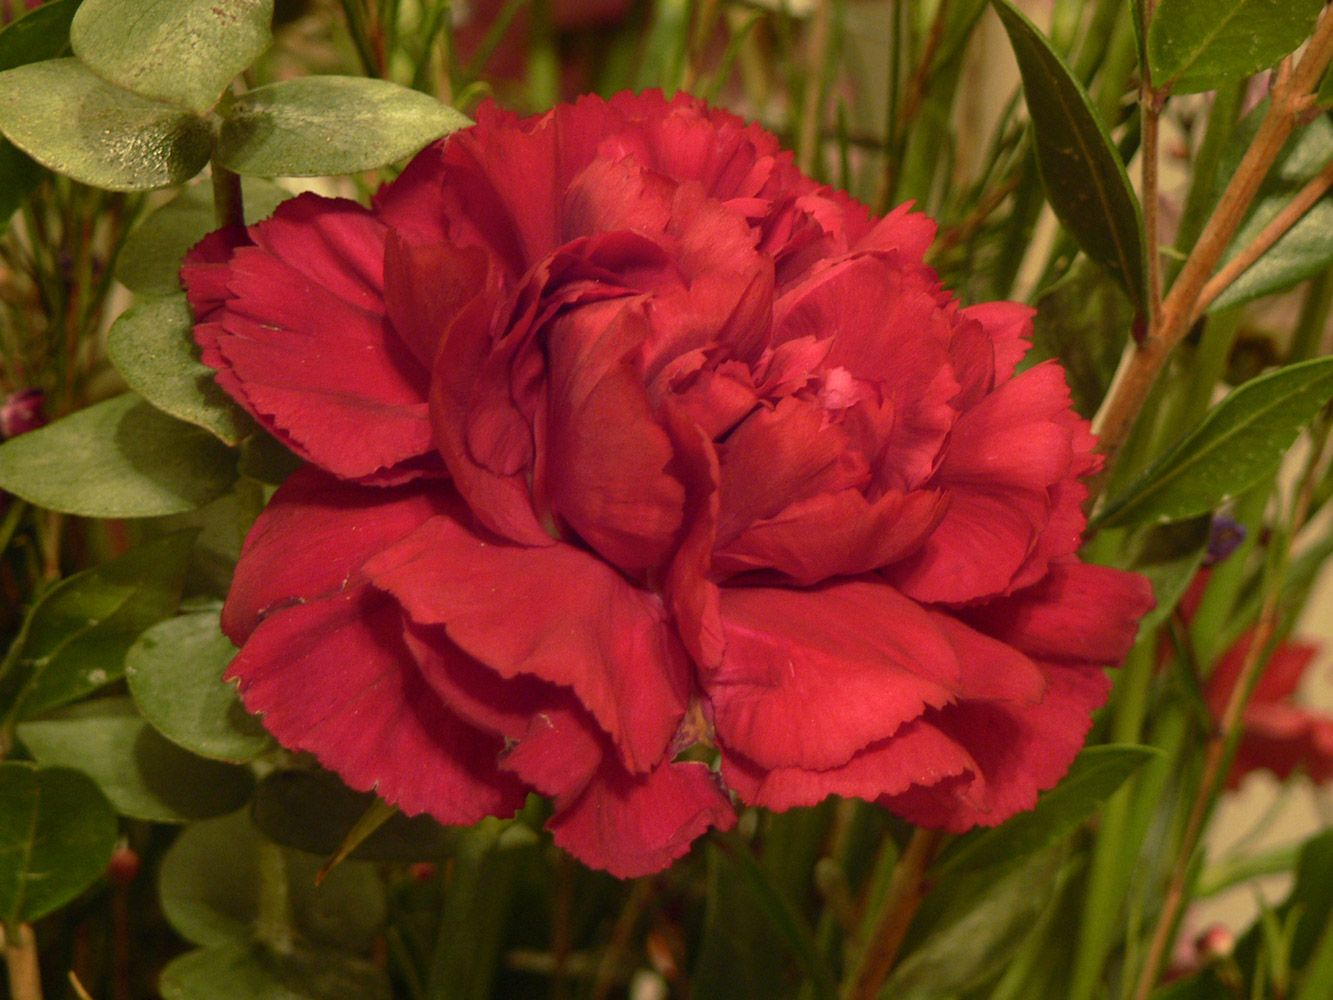 State Flower Of Ohio Red Carnation Types Of Flowers Flower Names Different Types Of Flowers